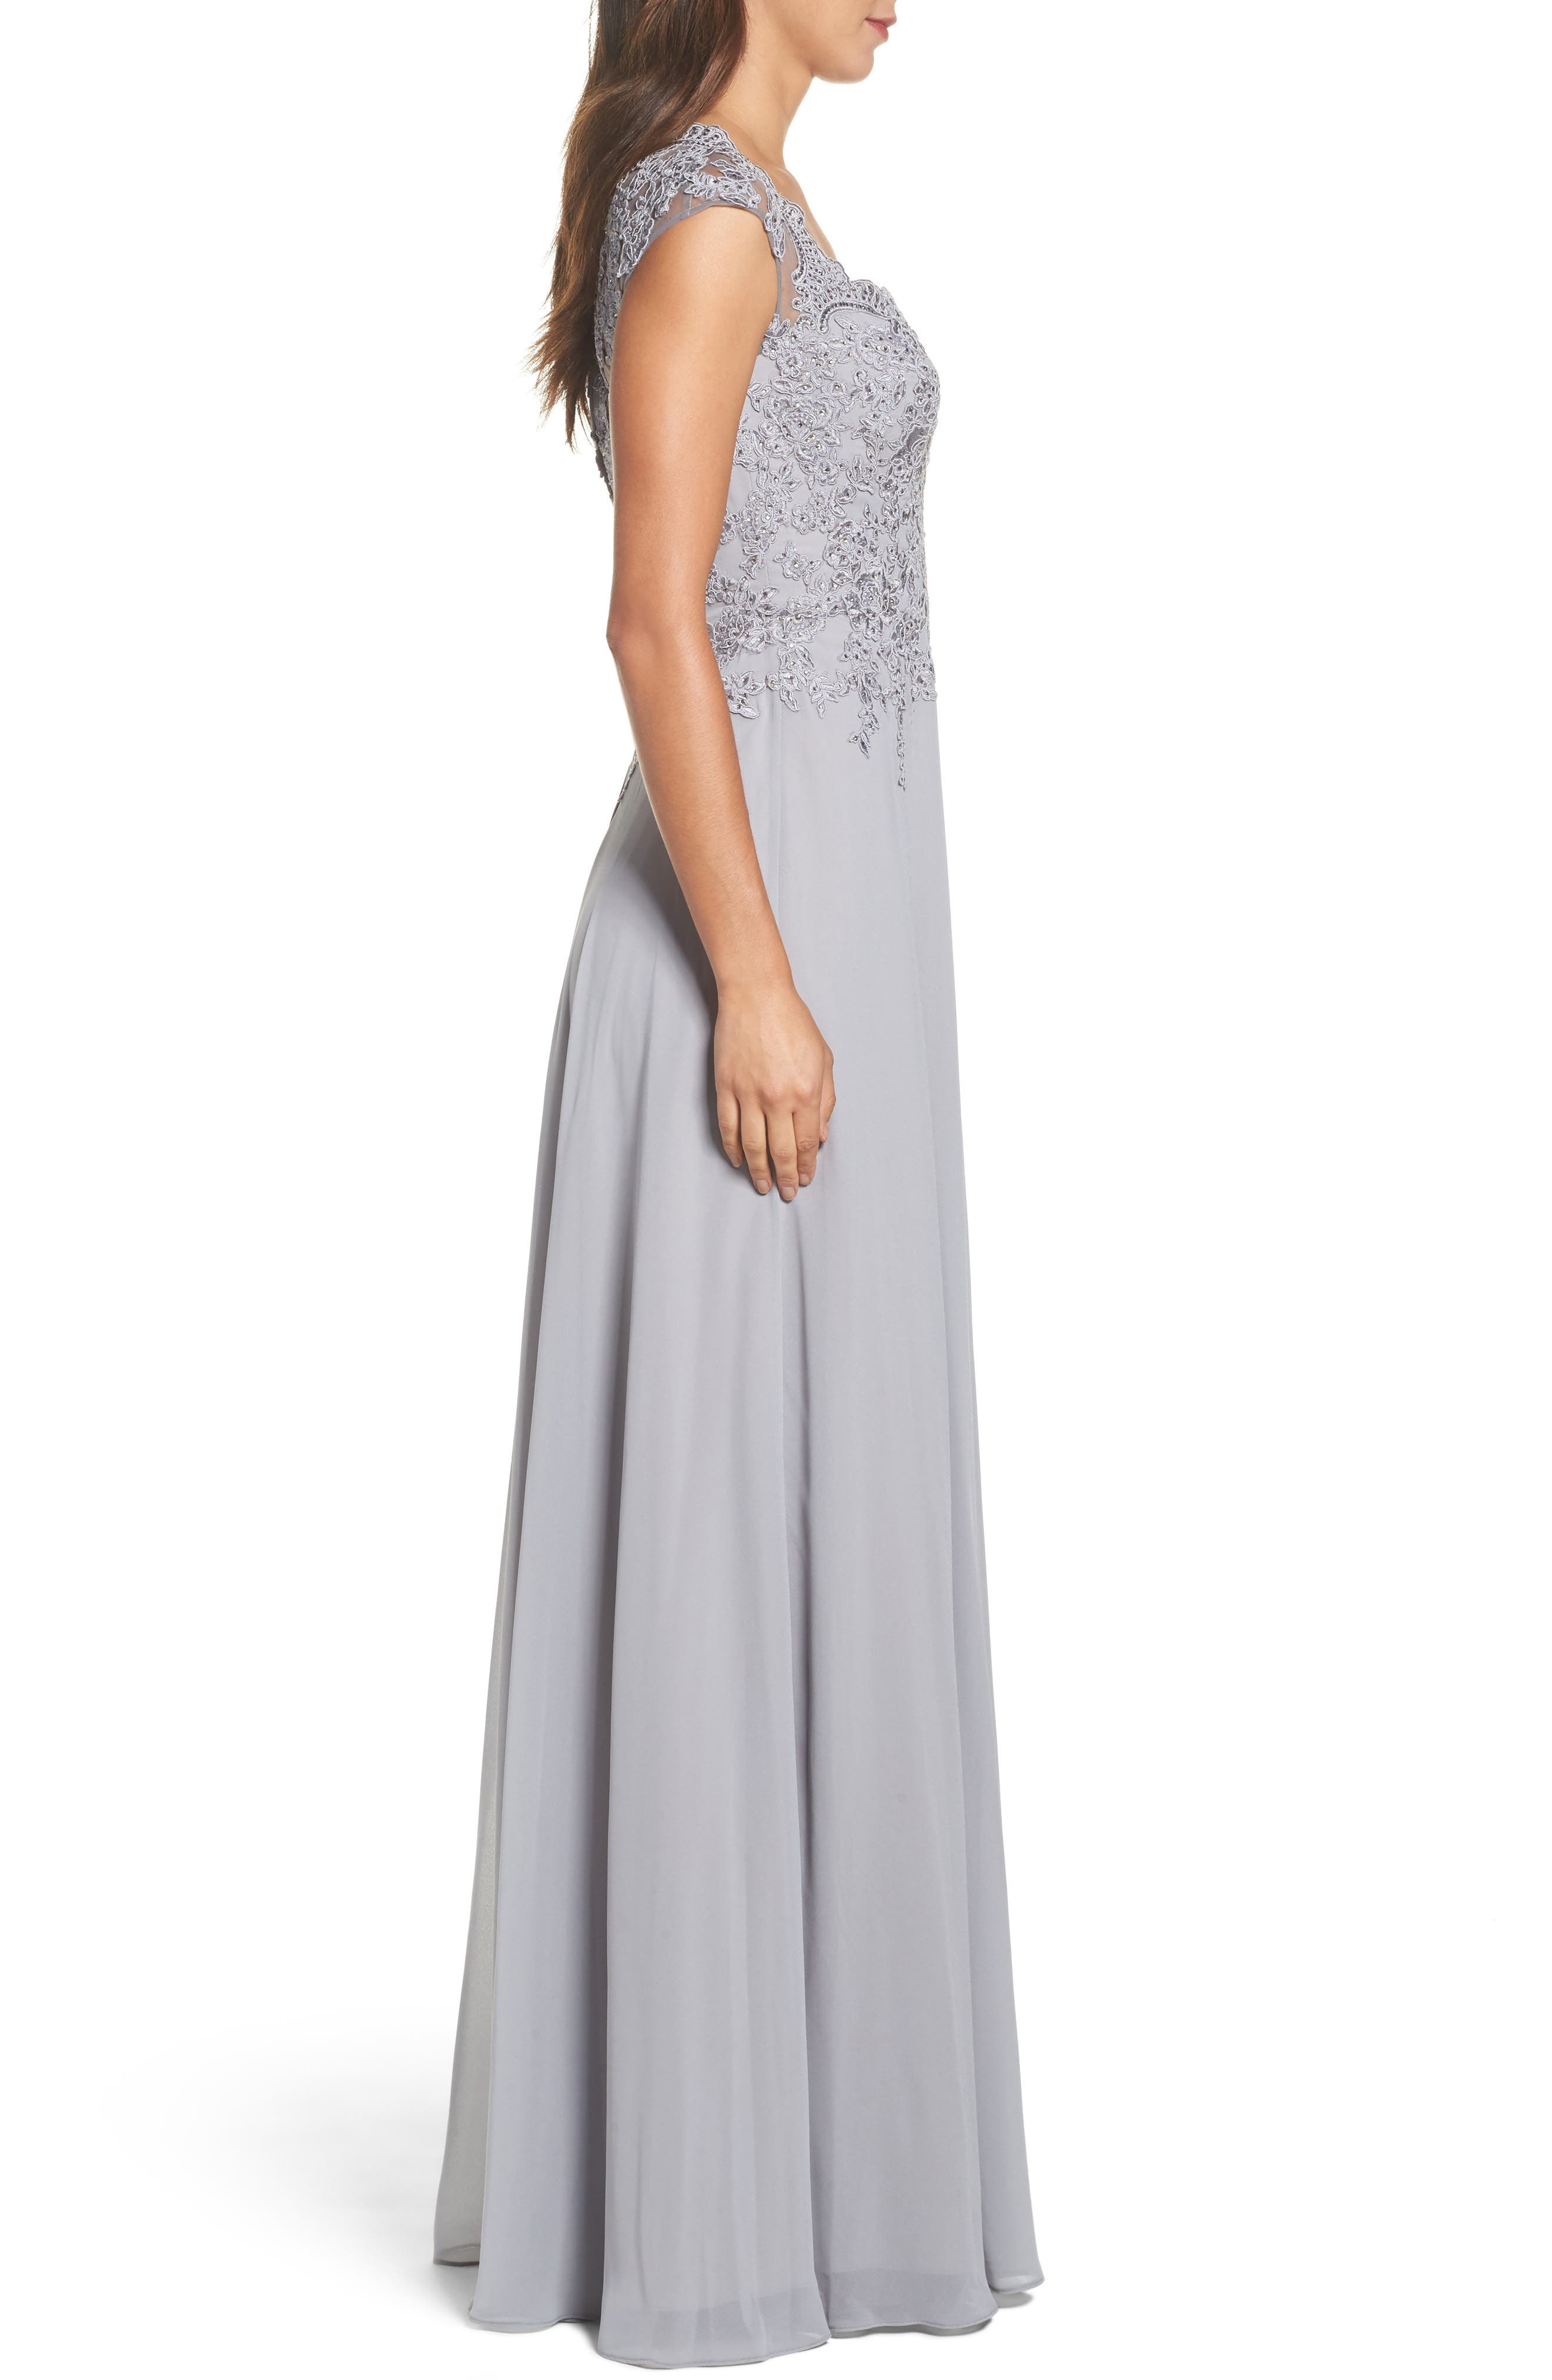 LA FEMME, Embellished Cap Sleeve Gown, Alternate thumbnail 3, color, 040